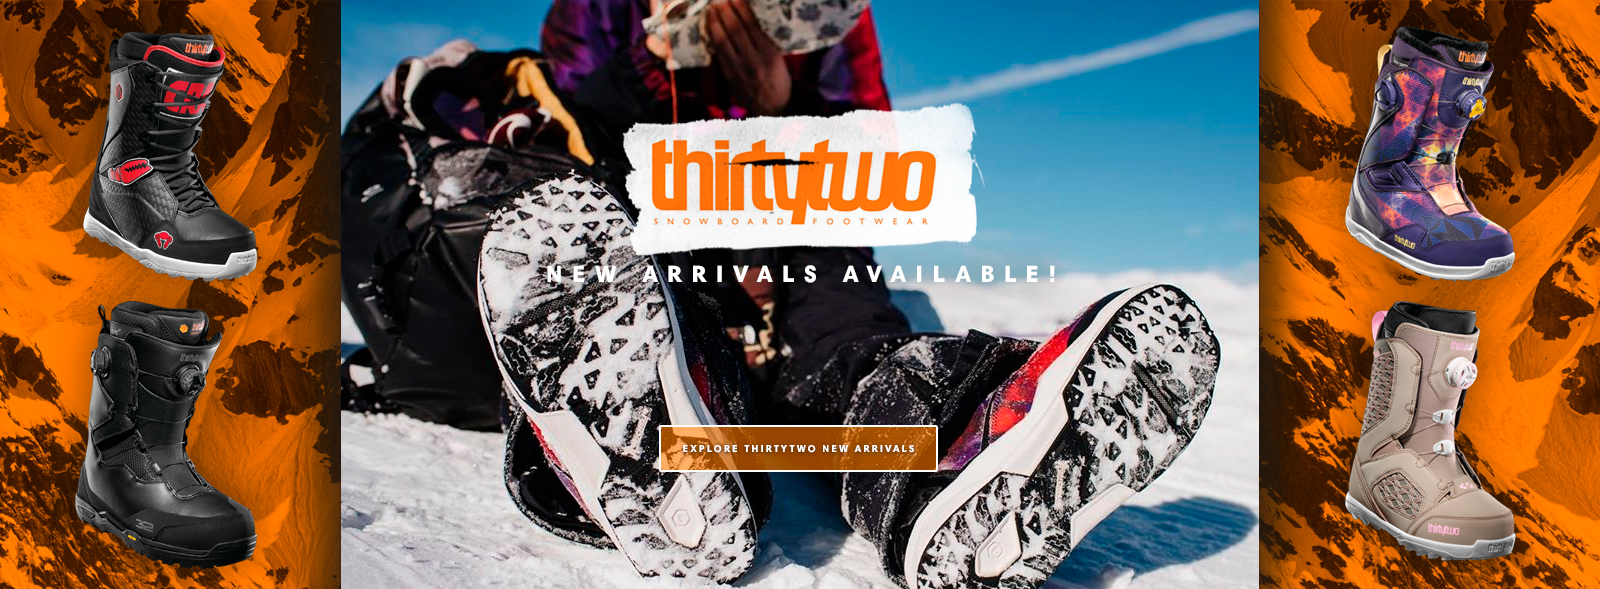 ThirtyTwo New Arrivals